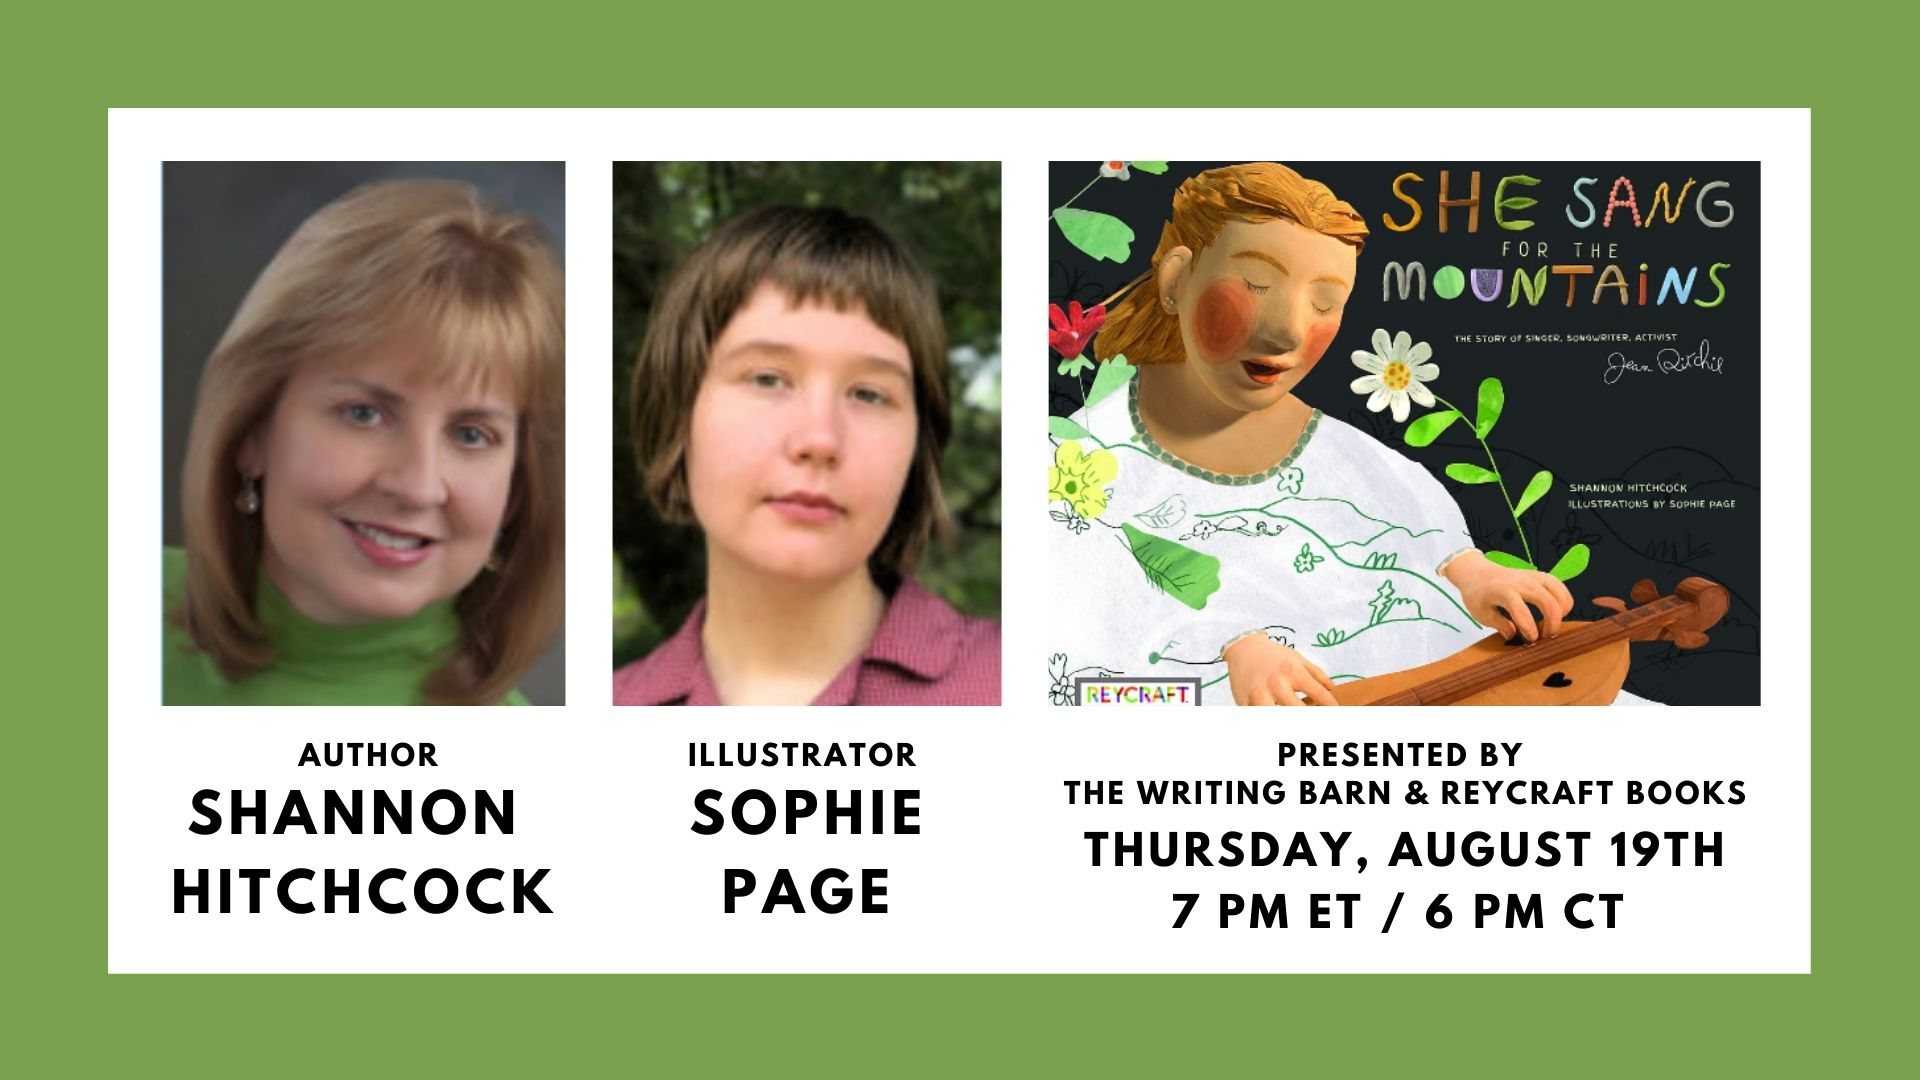 image shows green border with white box and black text with participants and event date. Also pictured are headshots of participants and cover of the featured book.